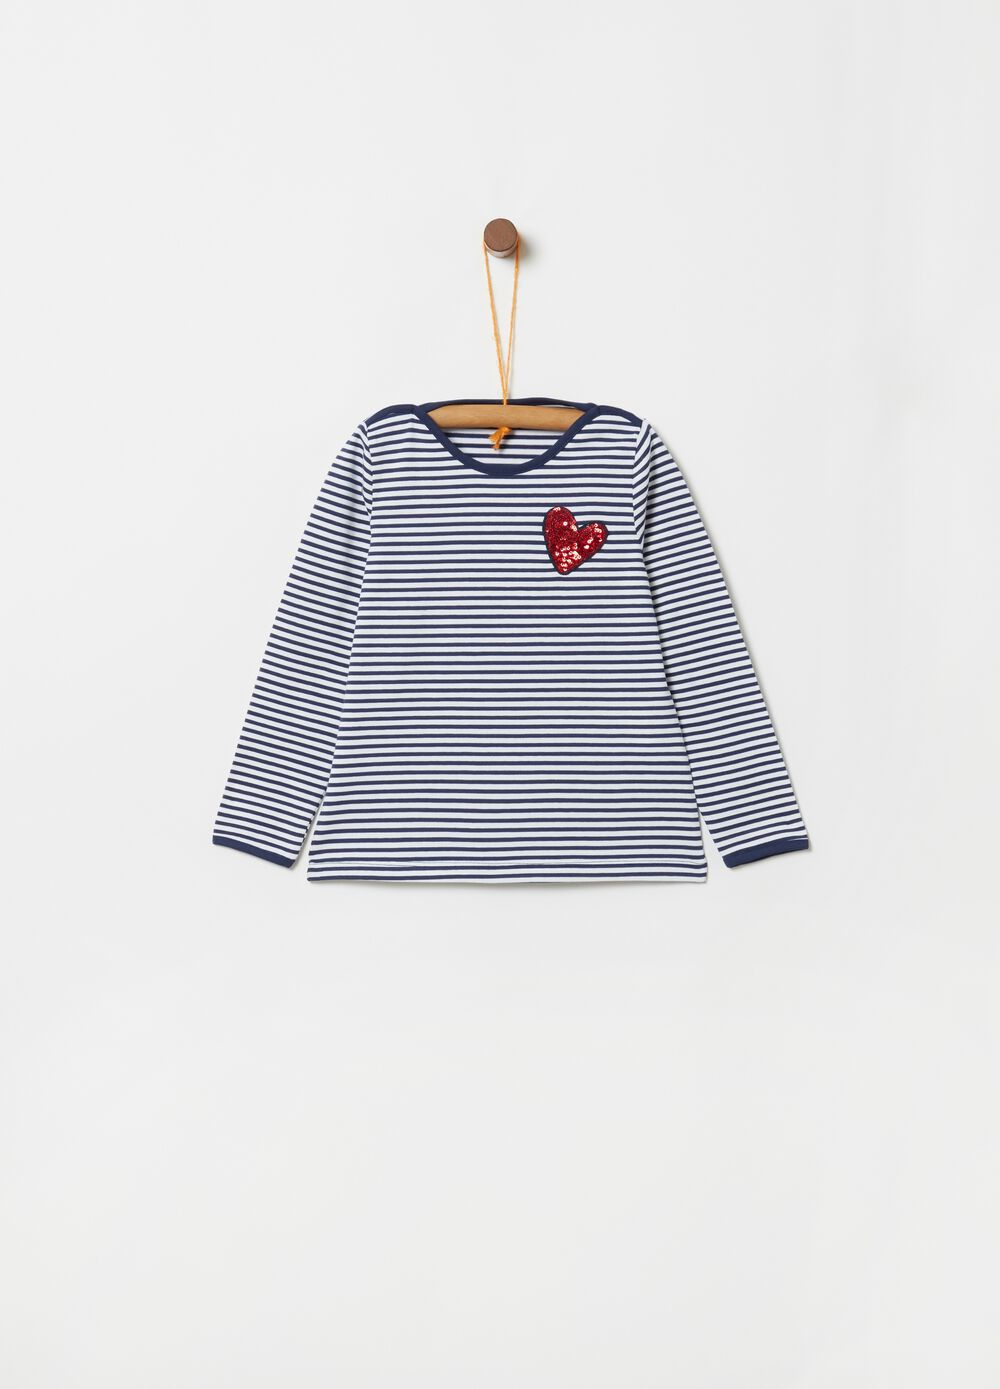 T-shirt biocotton paillettes a cuore e righe